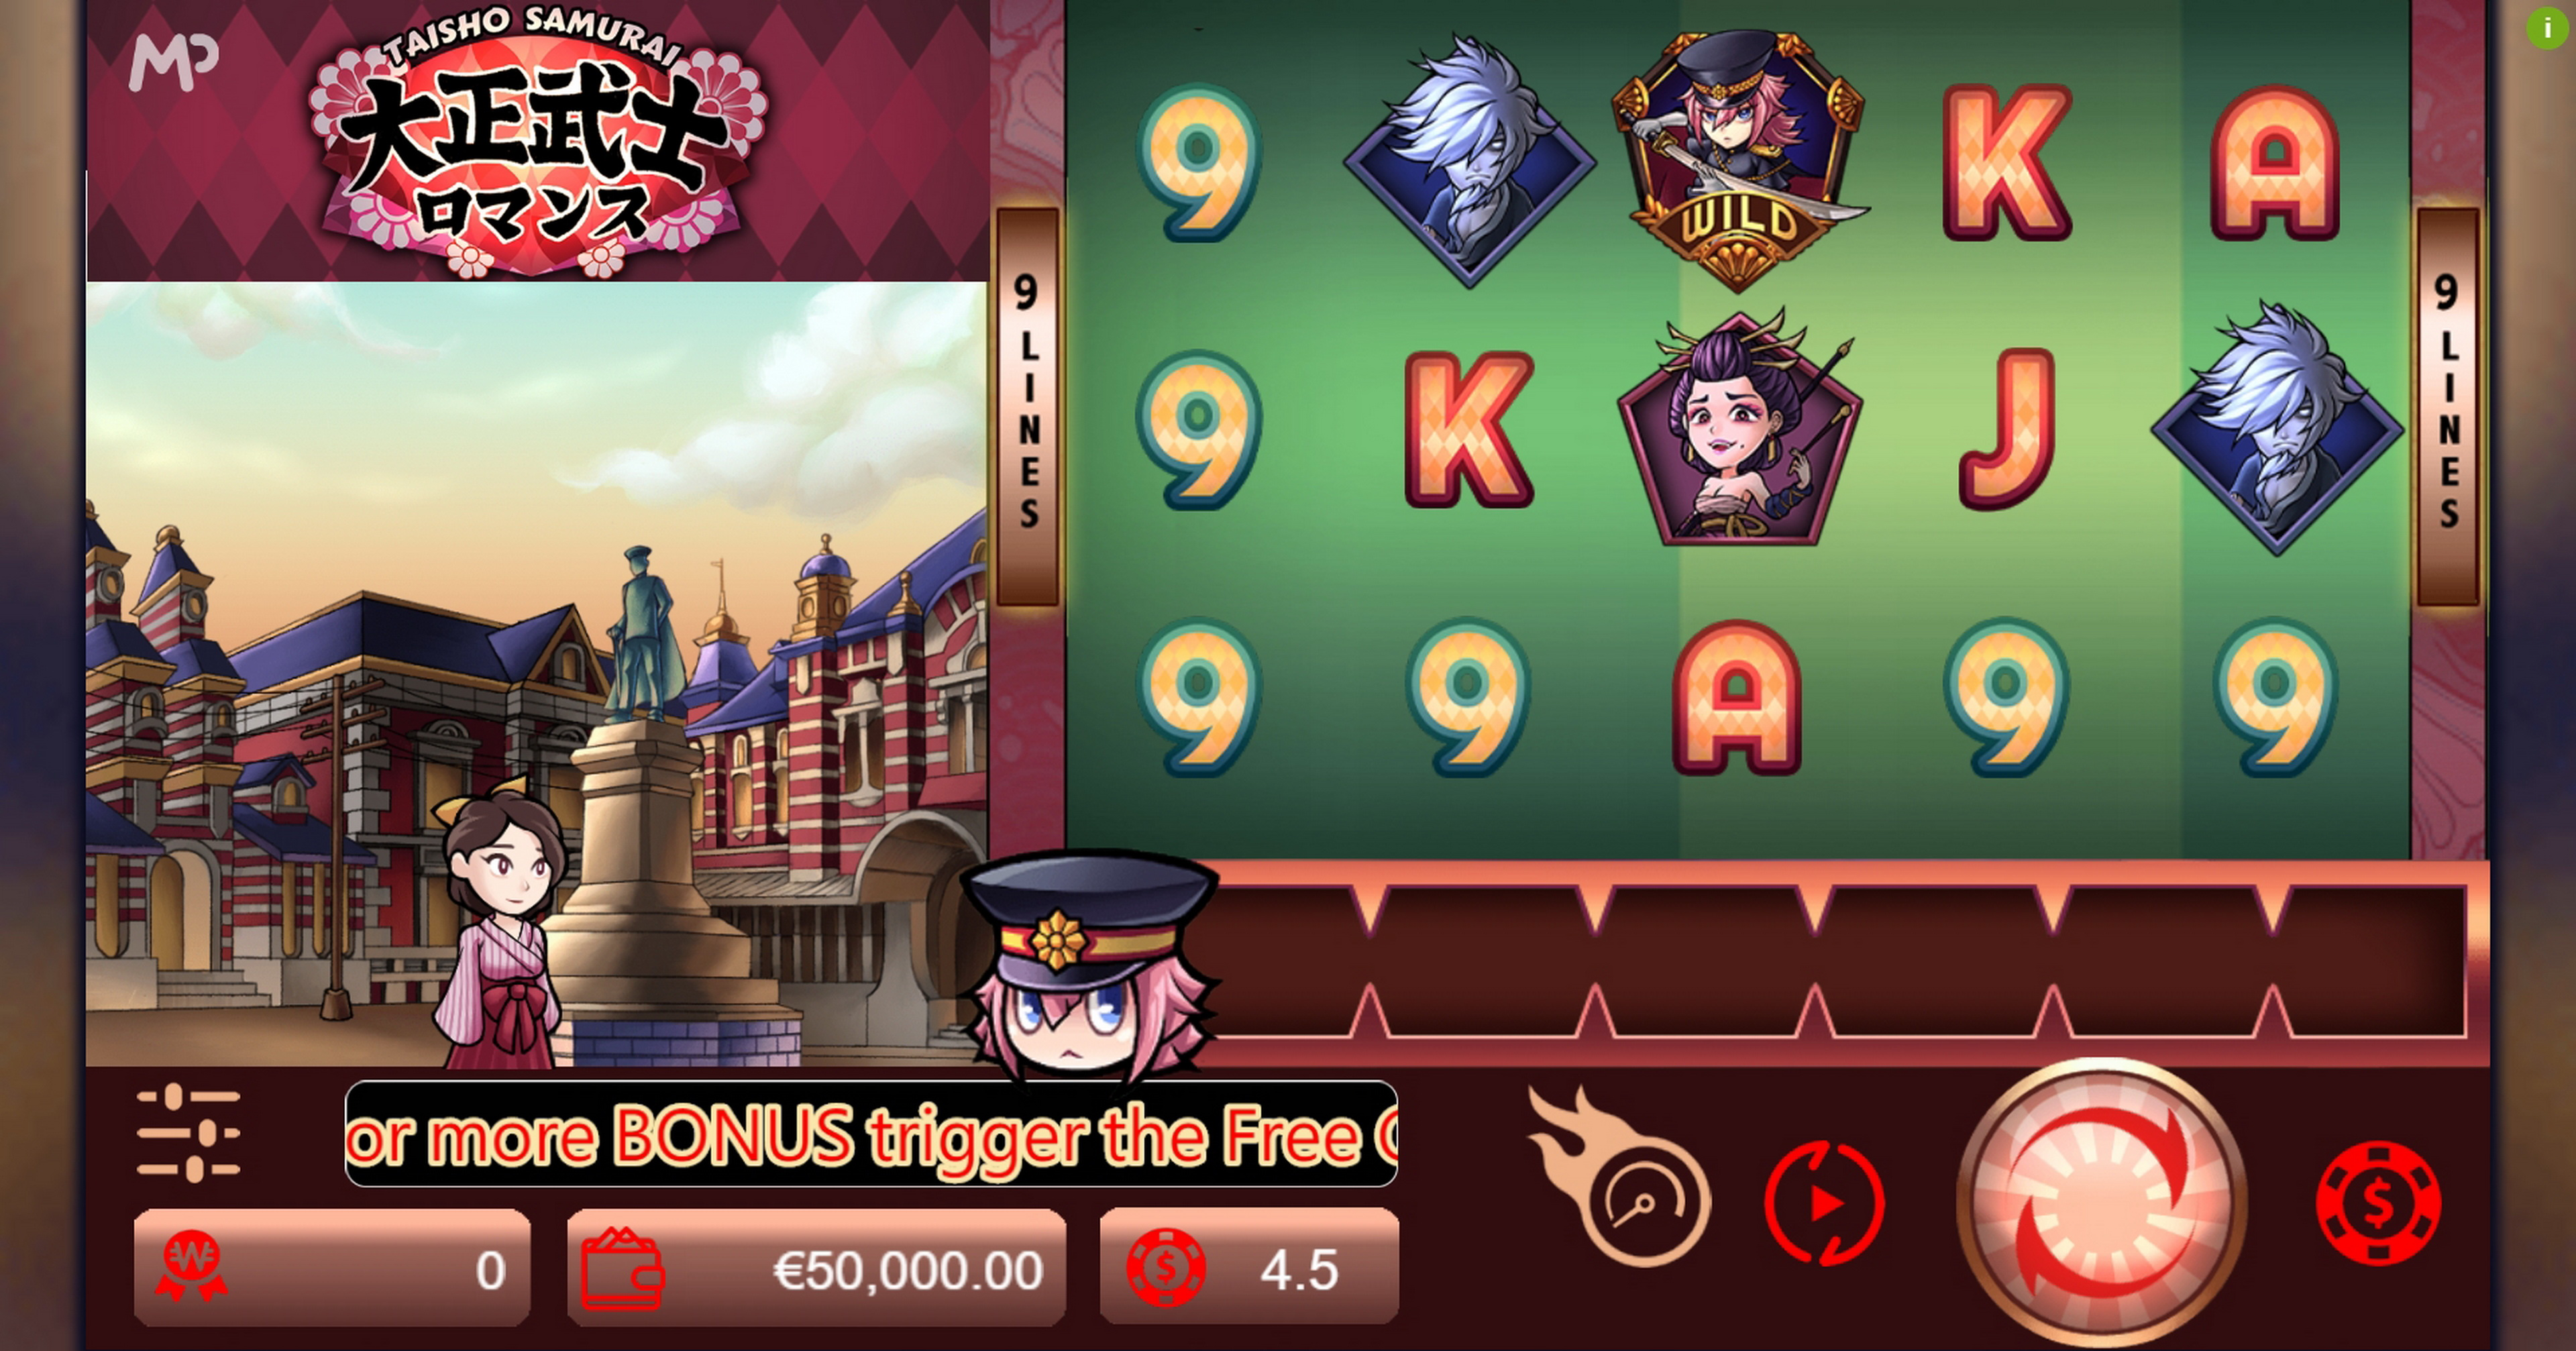 Reels in Taisho Samurai Slot Game by Manna Play